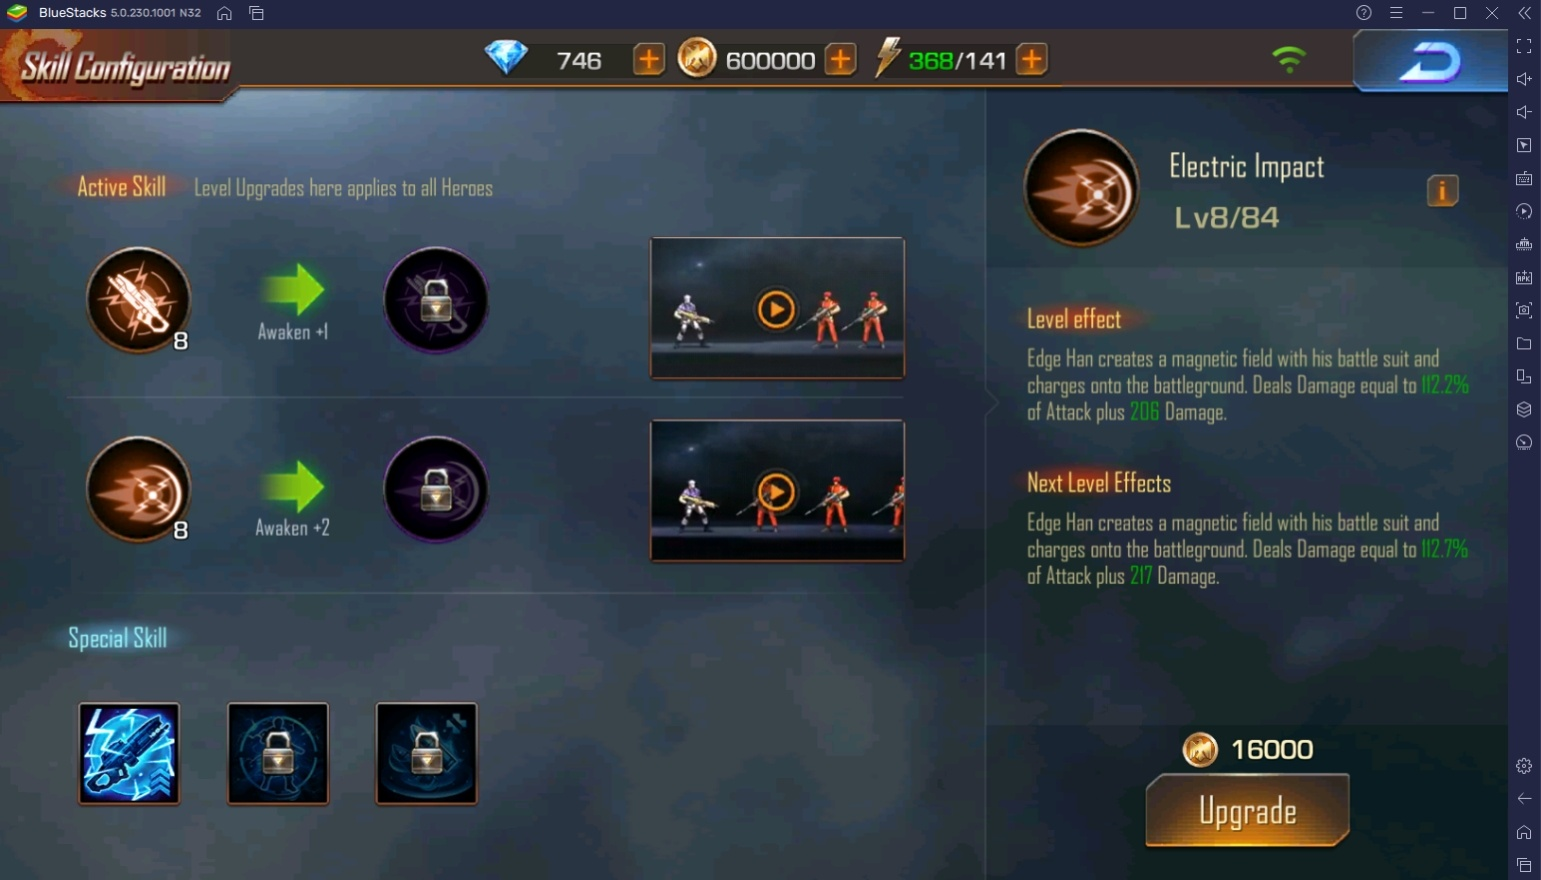 BlueStacks' Guide To Increasing Firepower in Contra Returns